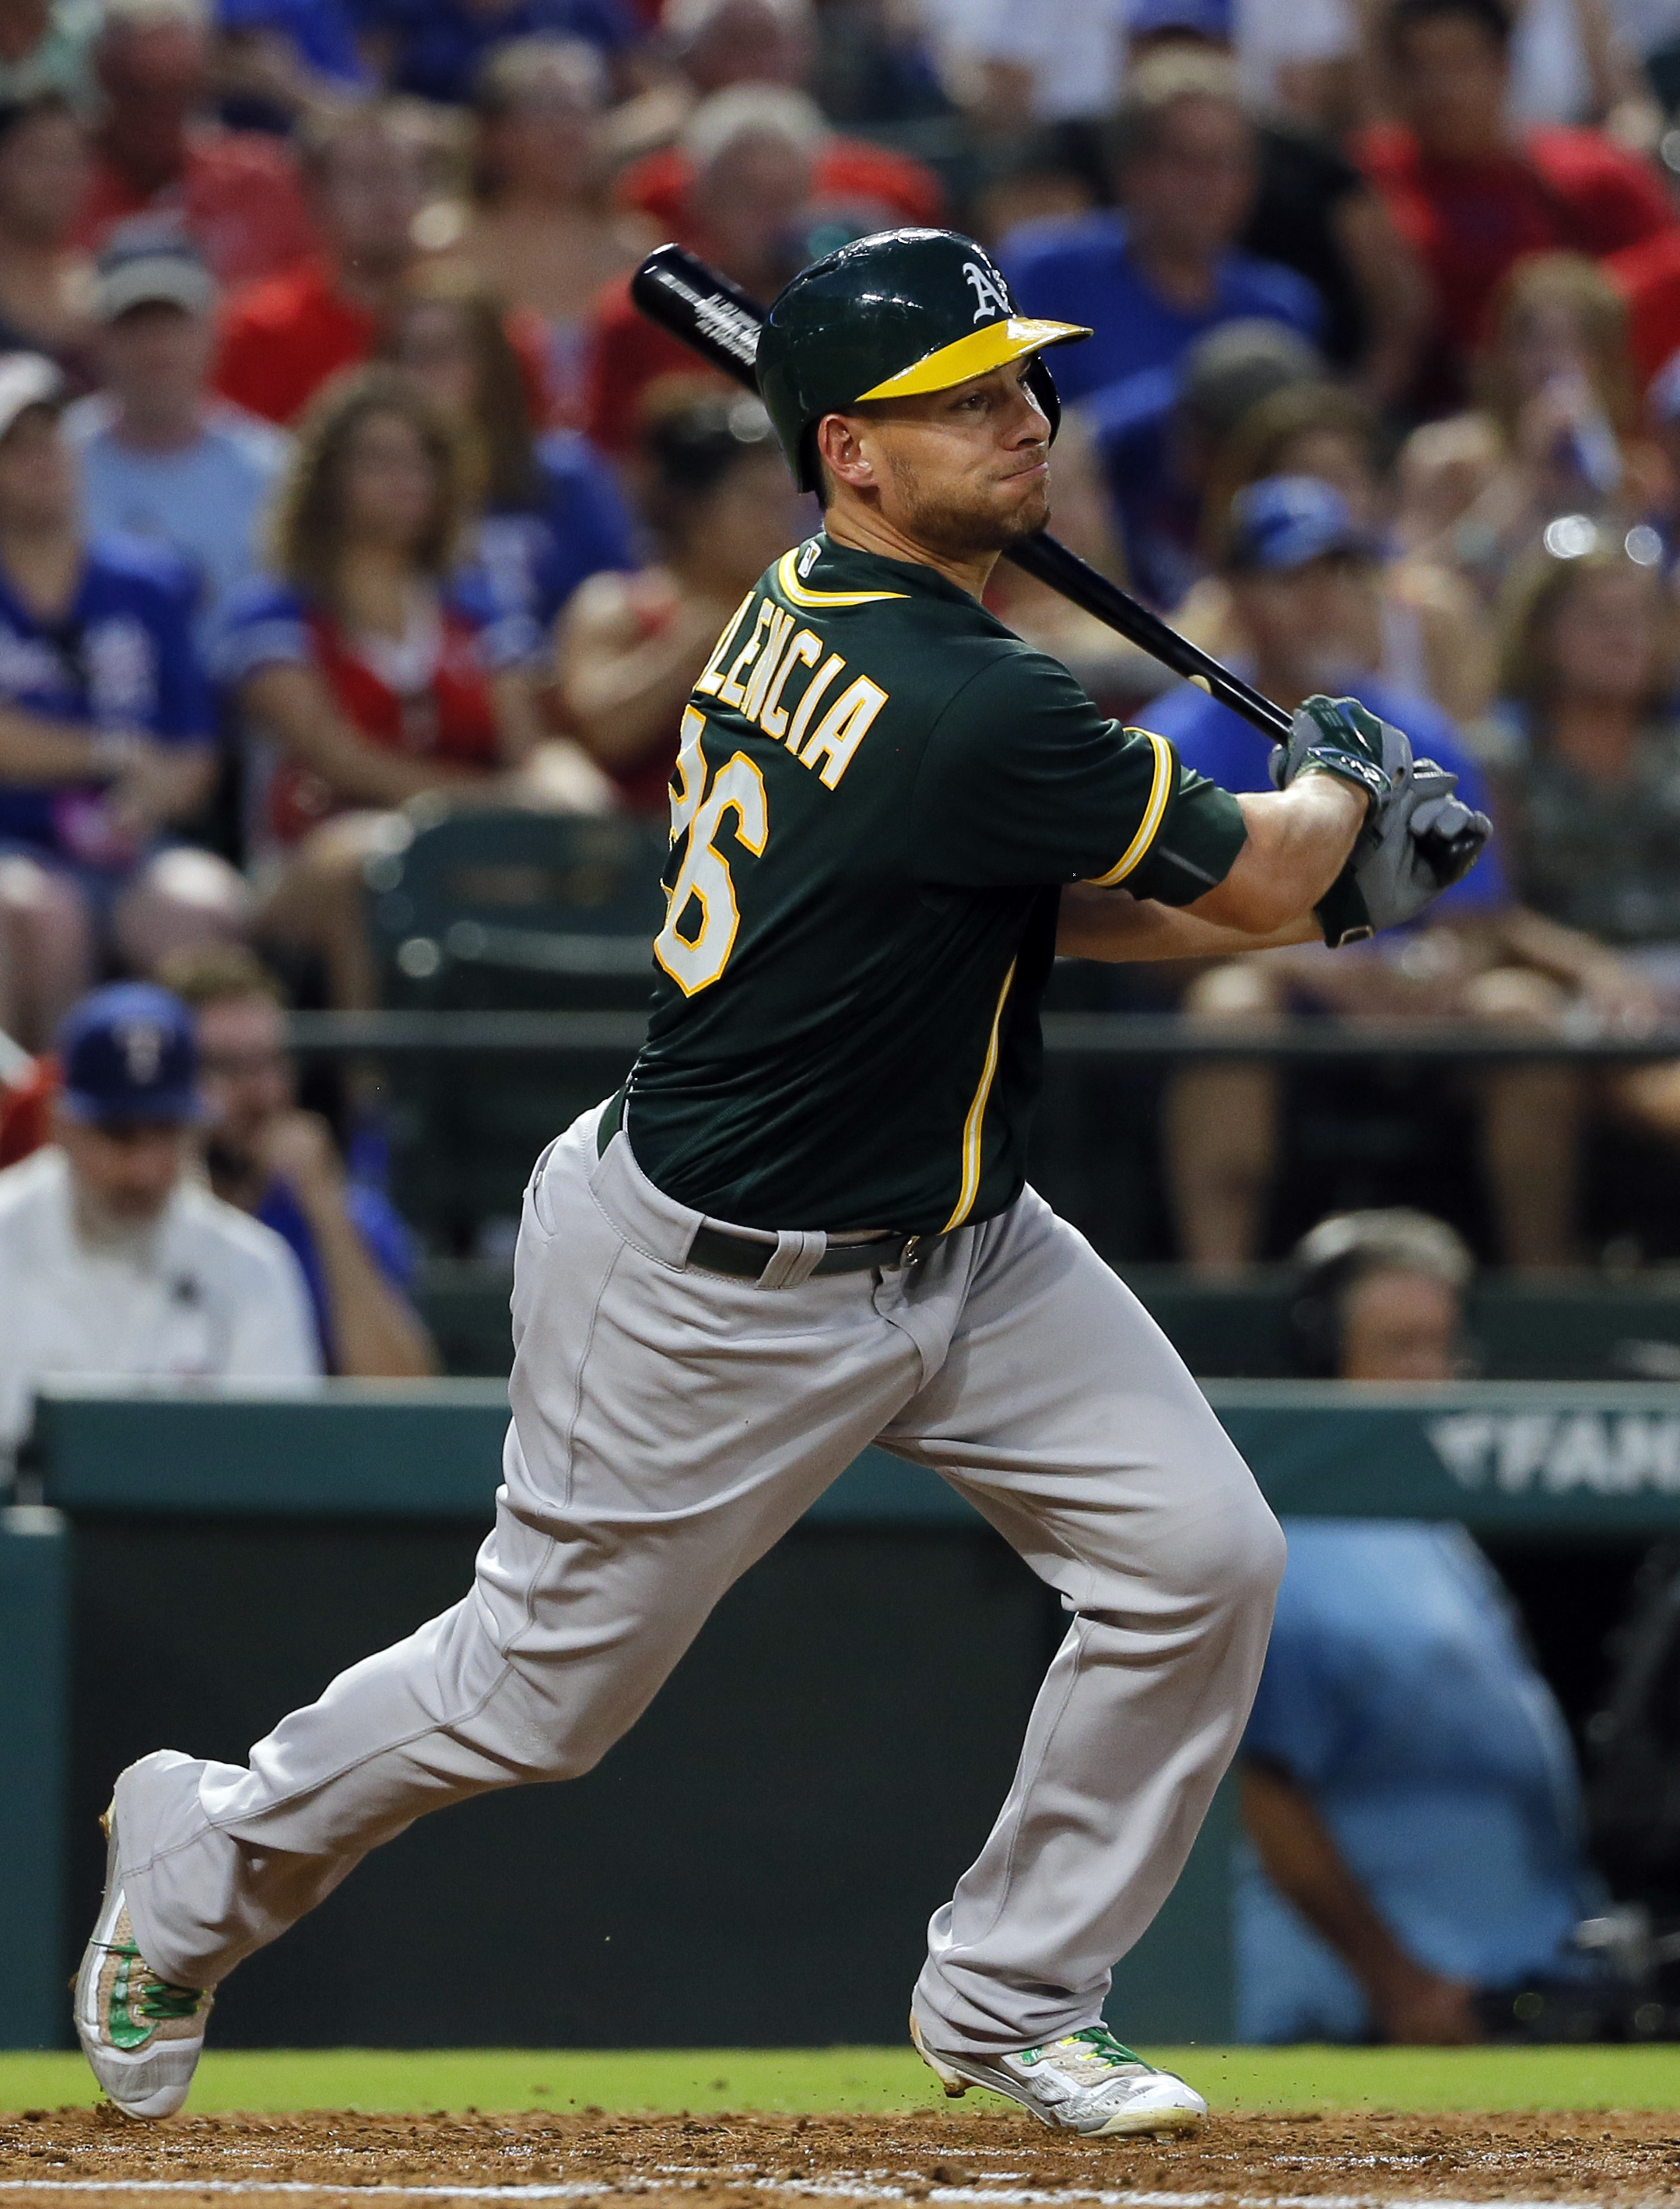 Oakland Athletics' Danny Valencia follows through on a single off a pitch from Texas Rangers' Yu Darvish in the second inning of a baseball game, Saturday, Sept. 17, 2016, in Arlington, Texas. (AP Photo/Tony Gutierrez)